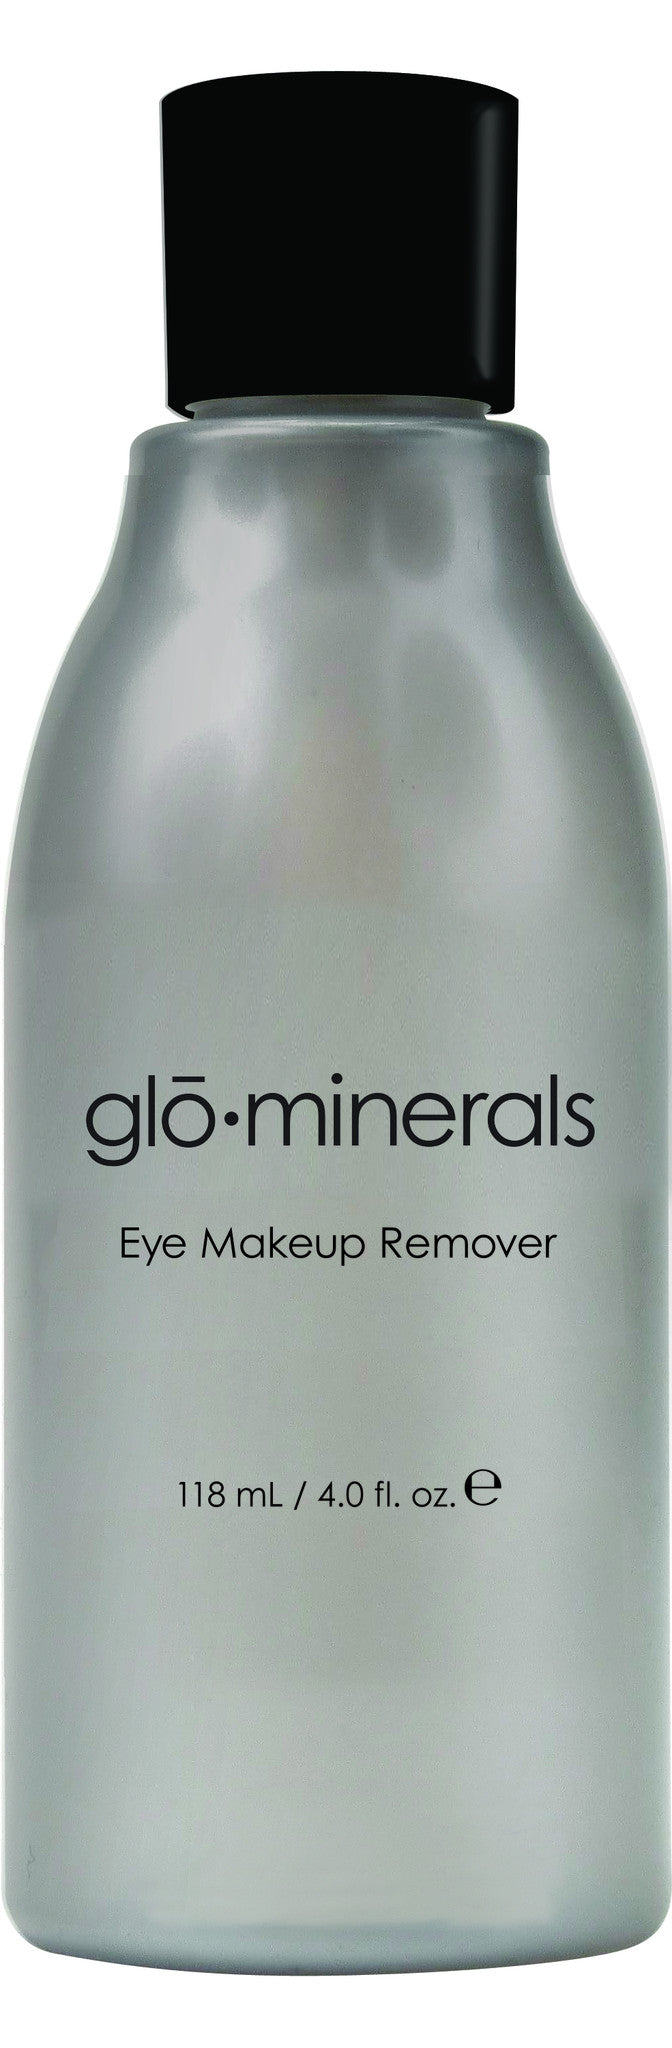 glō·minerals - Eye Makeup Remover